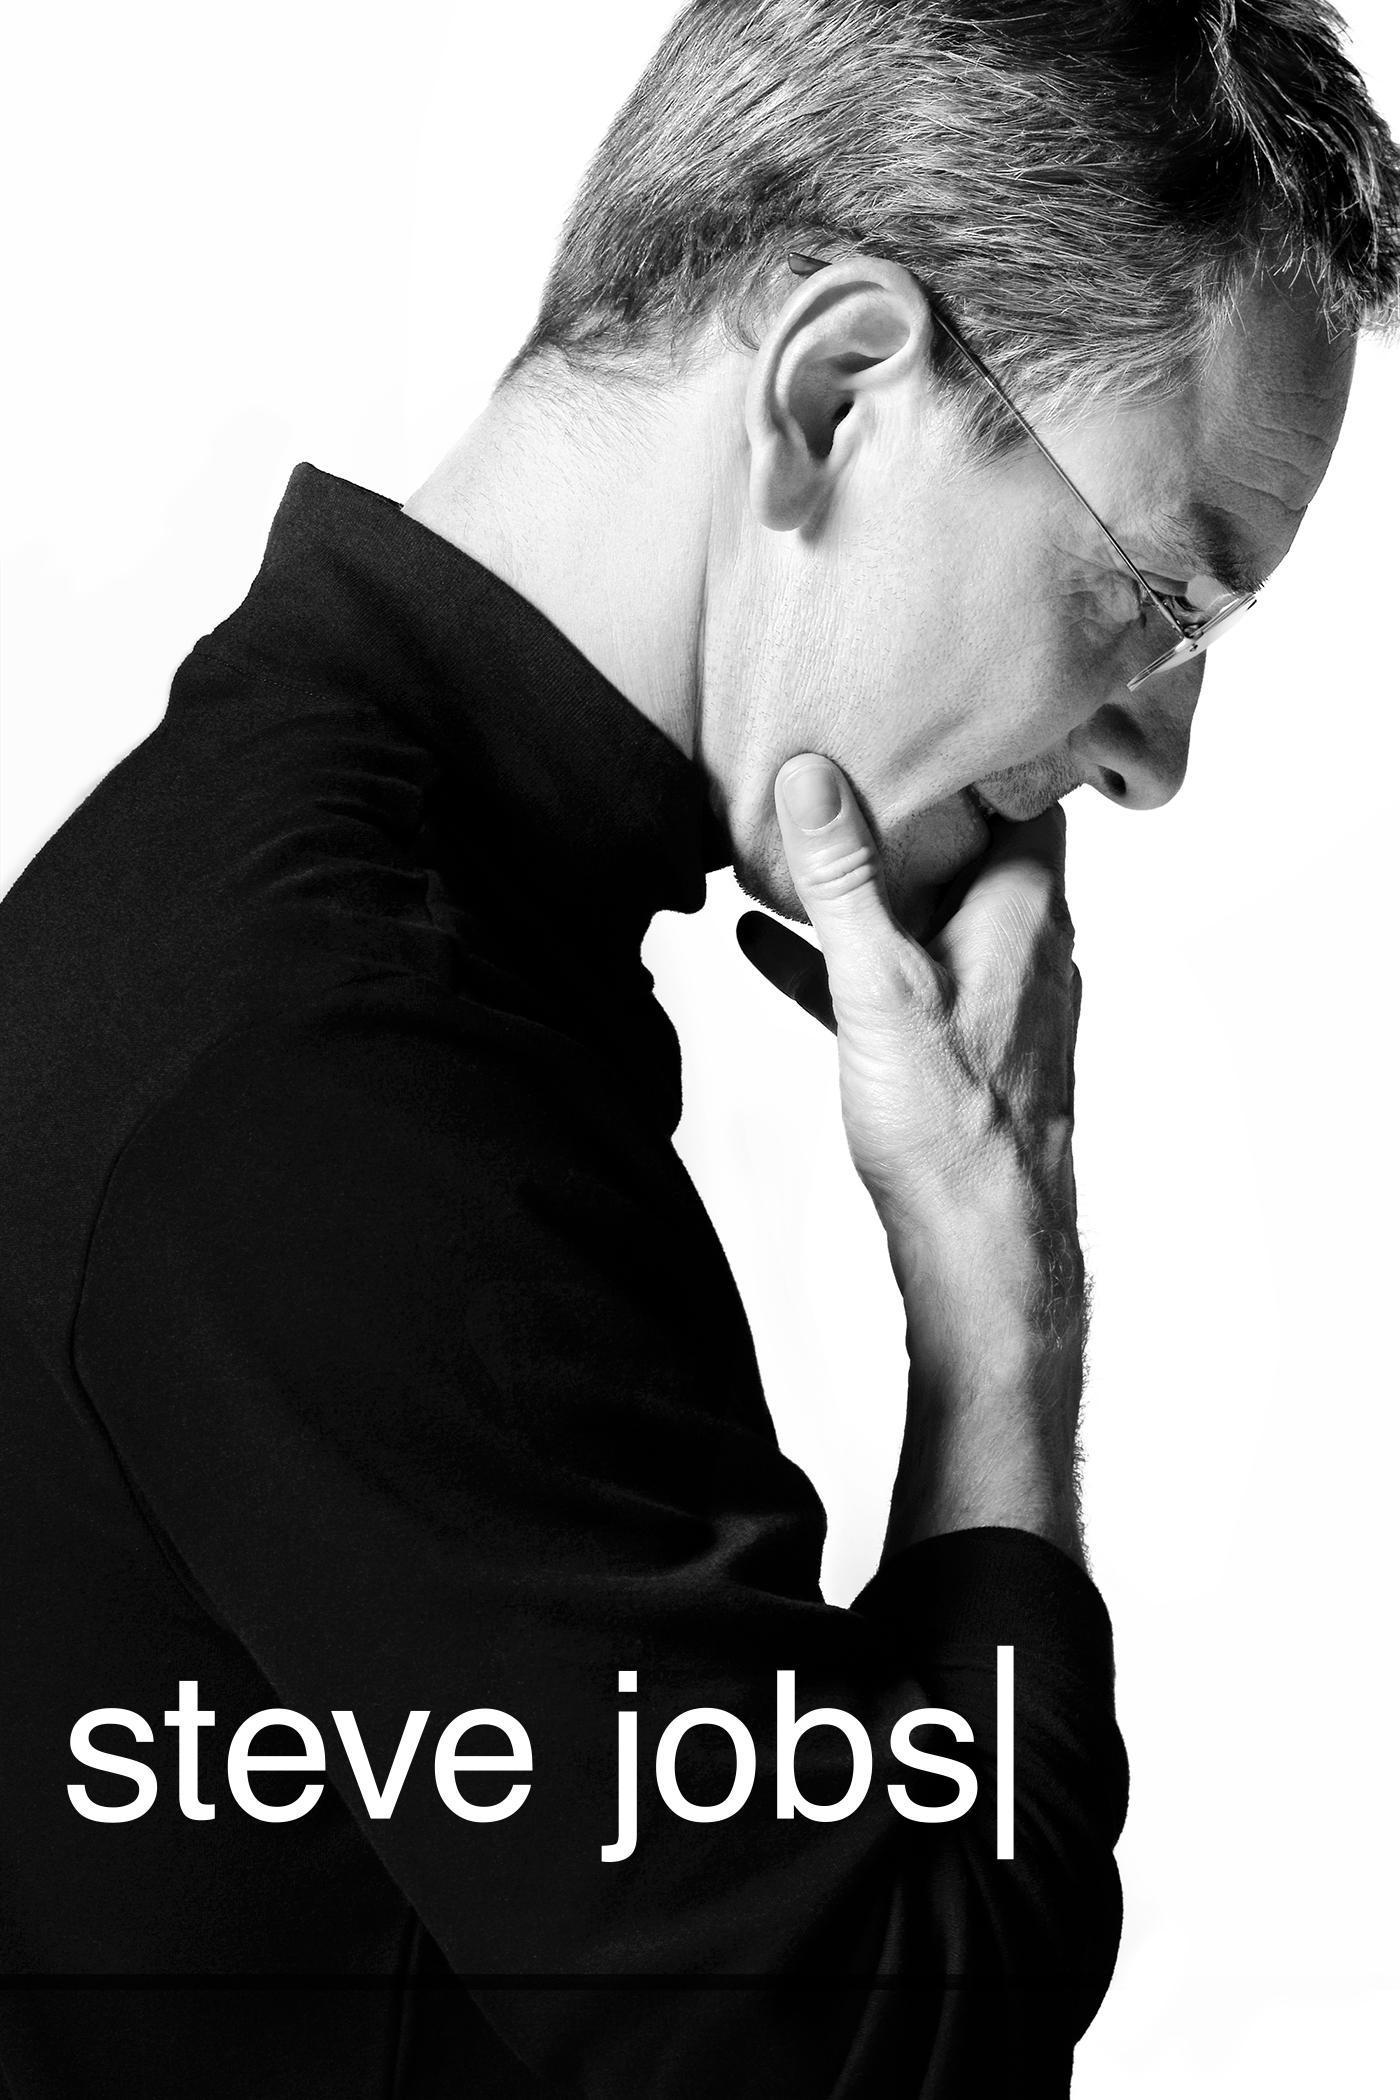 Steve Jobs by Danny Boyle movie poster